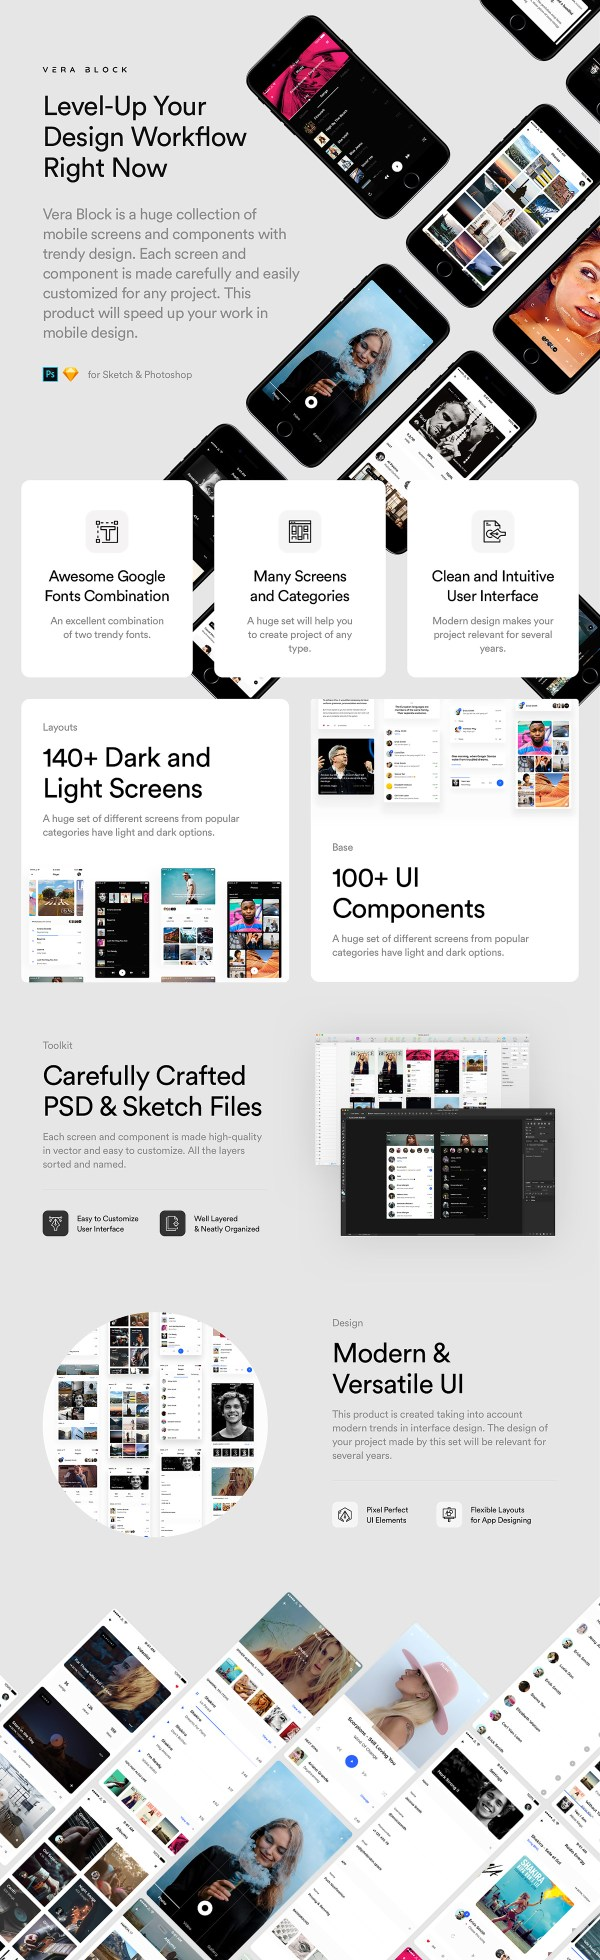 Vera Block: A Huge Set of Free UI Components and App Screens